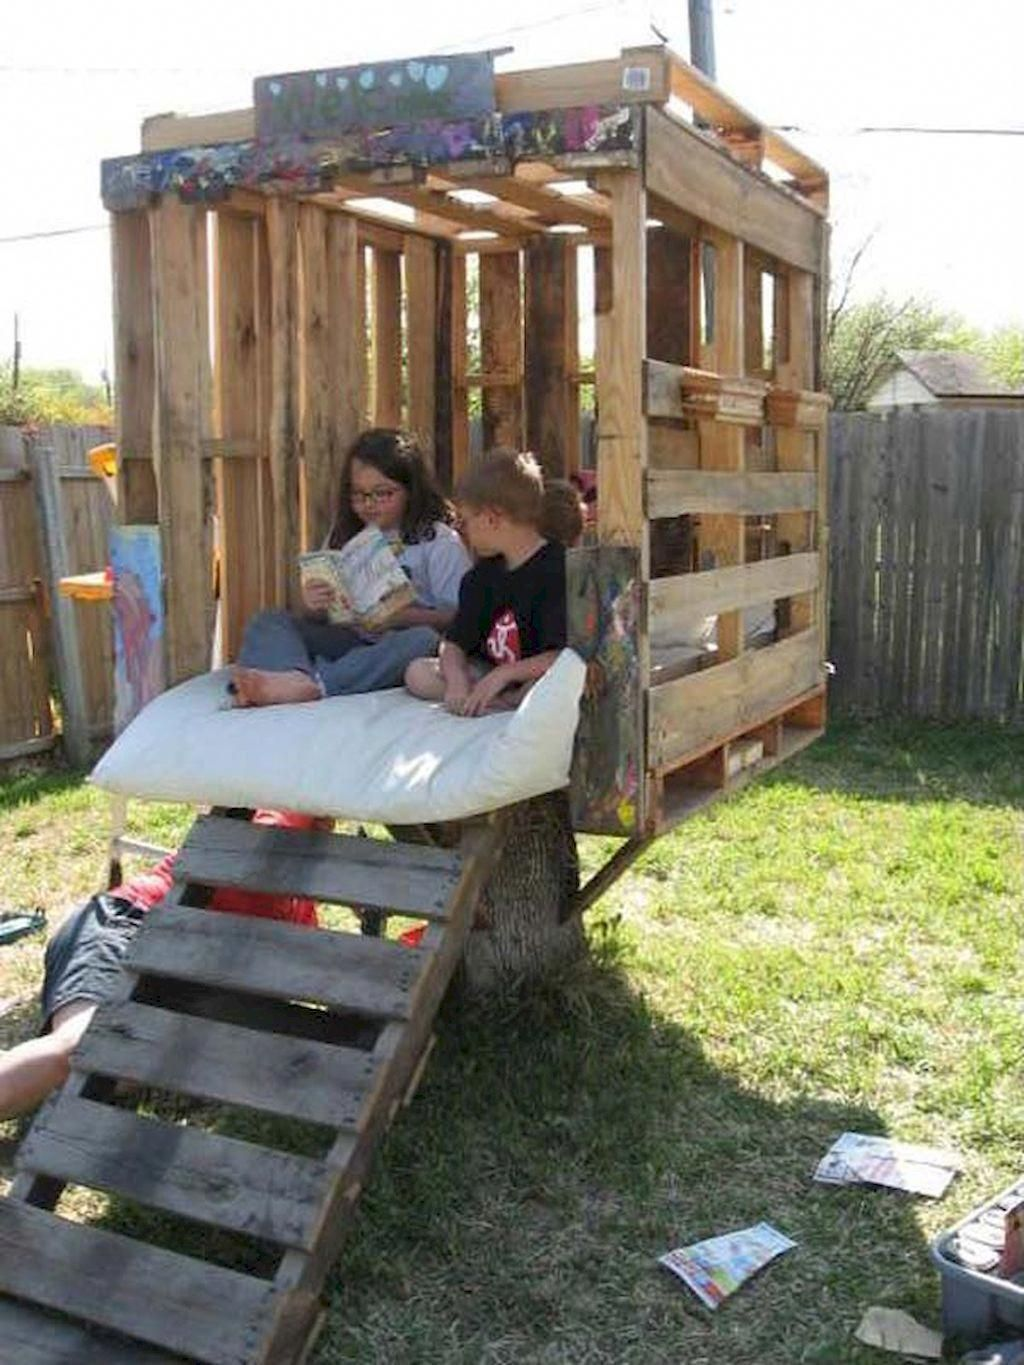 Incredible Magical Backyard Design Ideas For Your Kids 08